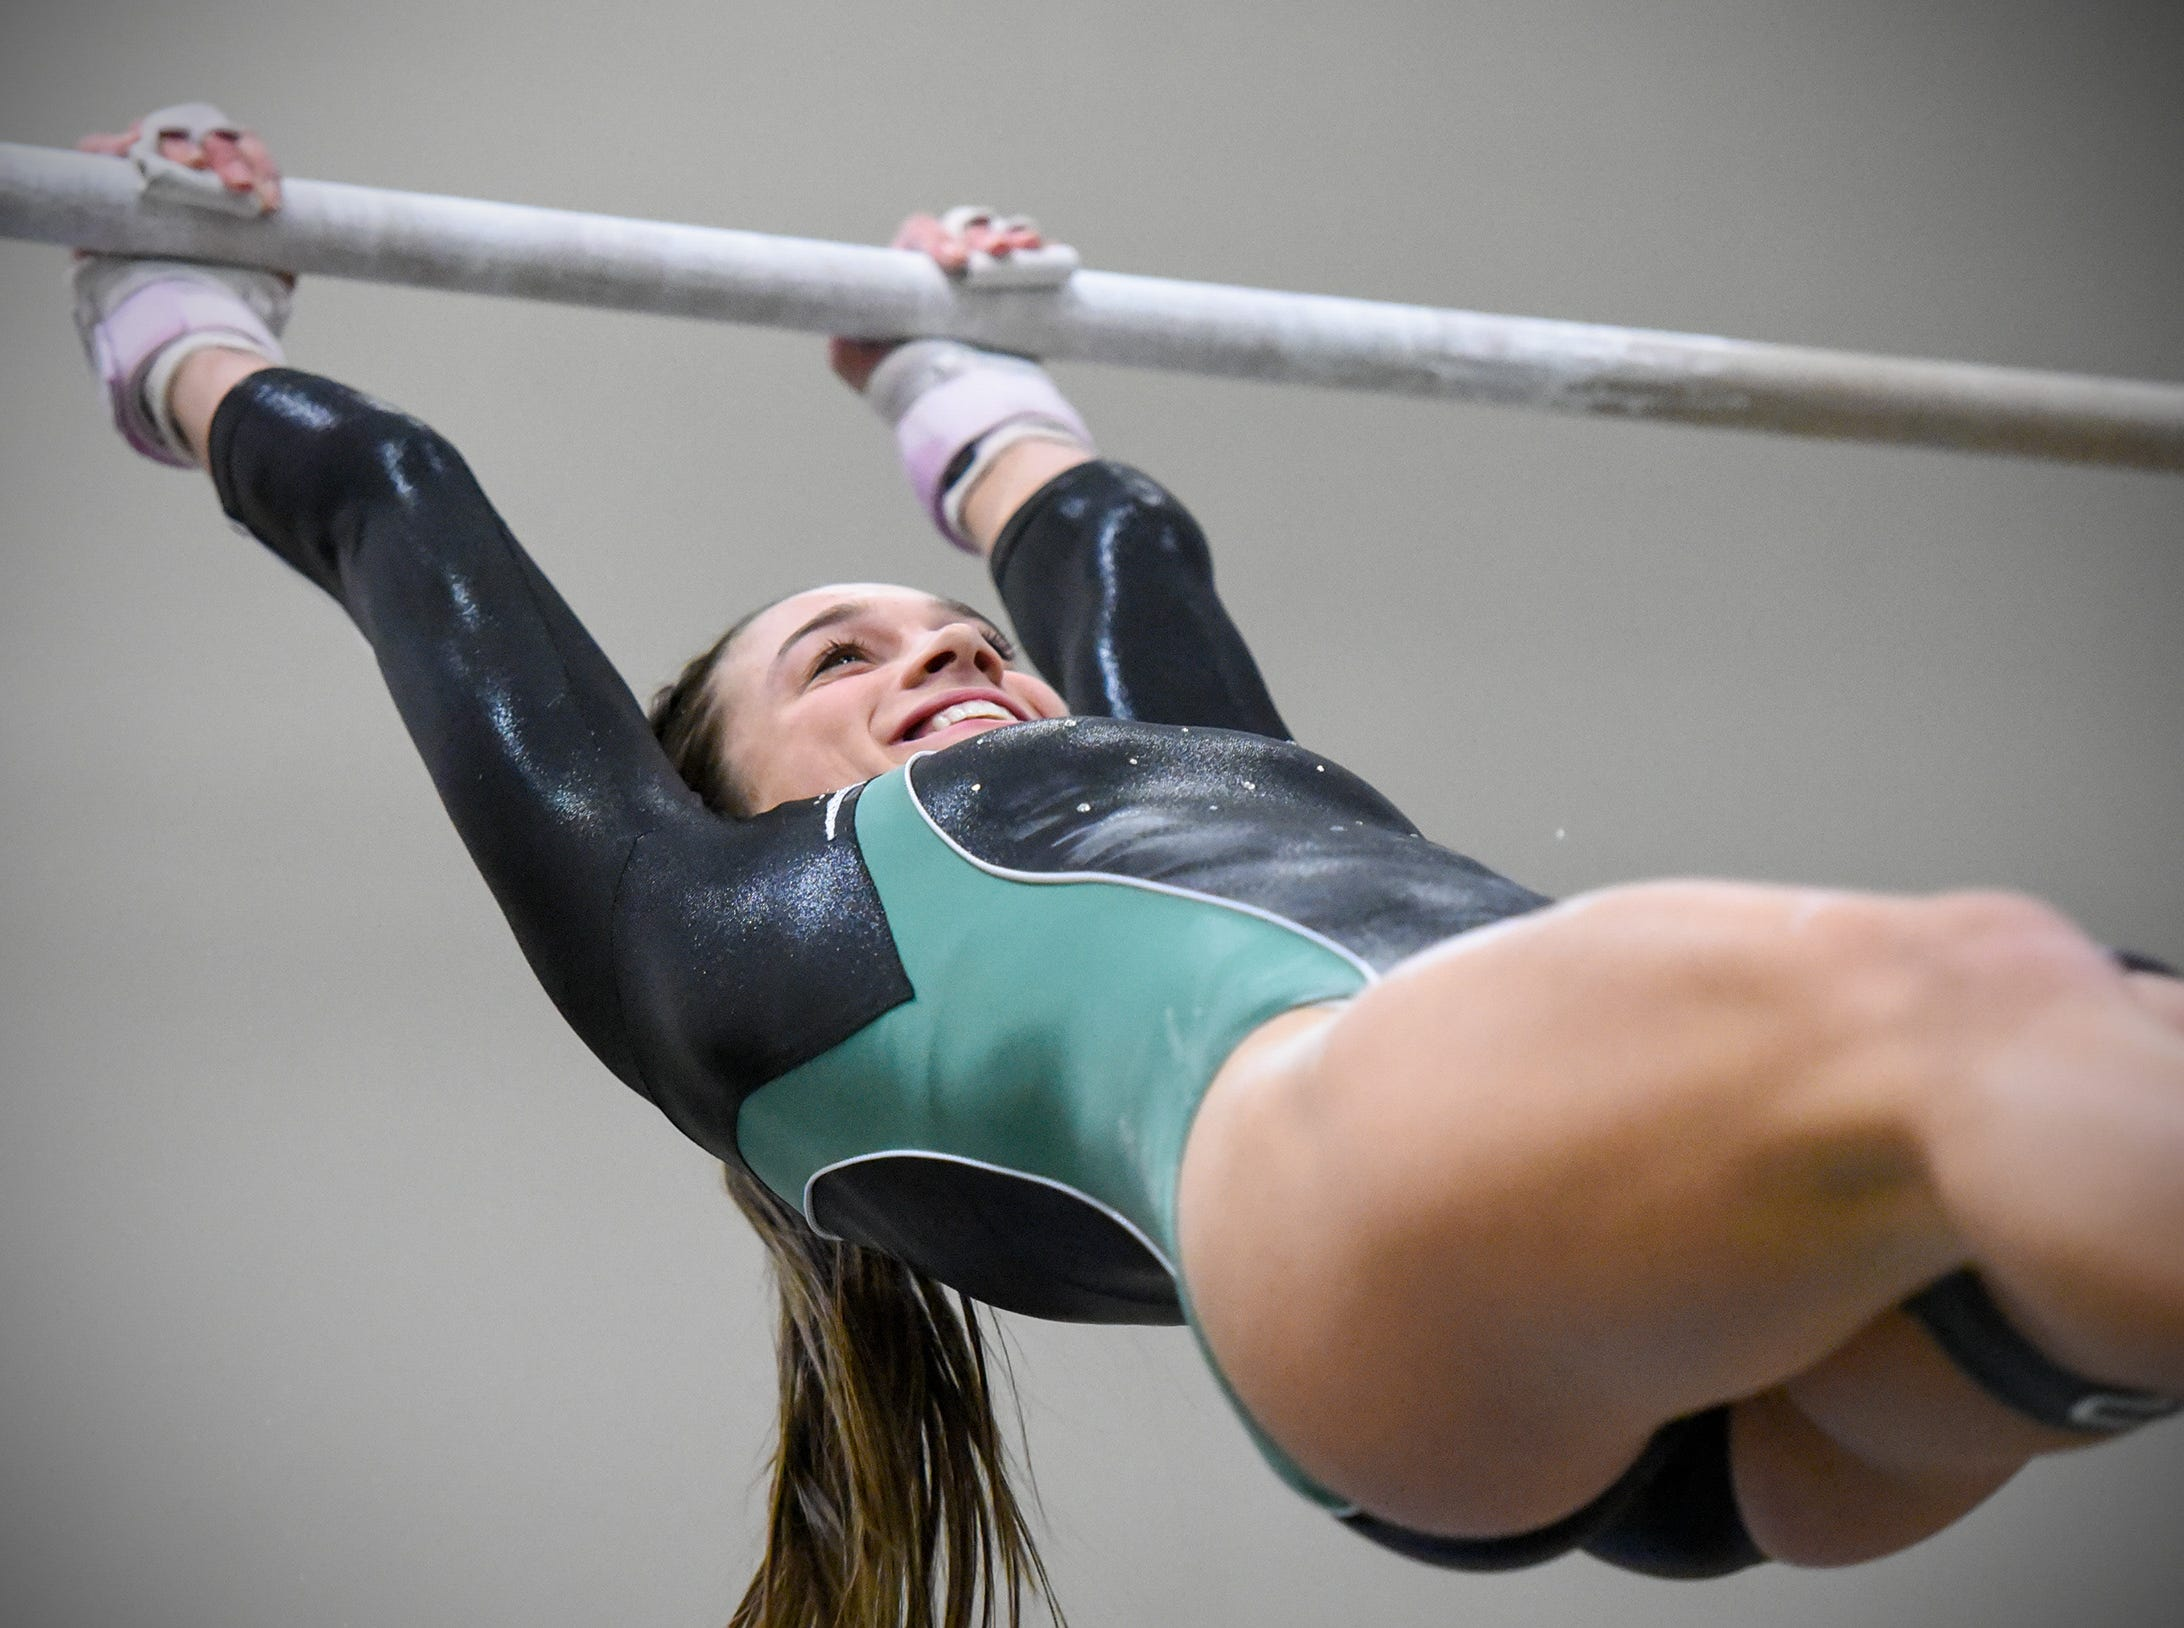 Sauk Rapids' Anna Walz competes on the bars Thursday, Jan. 3, at the Sauk Rapids-Rice High School. Sartell topped Sauk Rapids in the meet, 145.025 to 134.35. Go online to www.sctimes.com/sports to see more photos from the event.